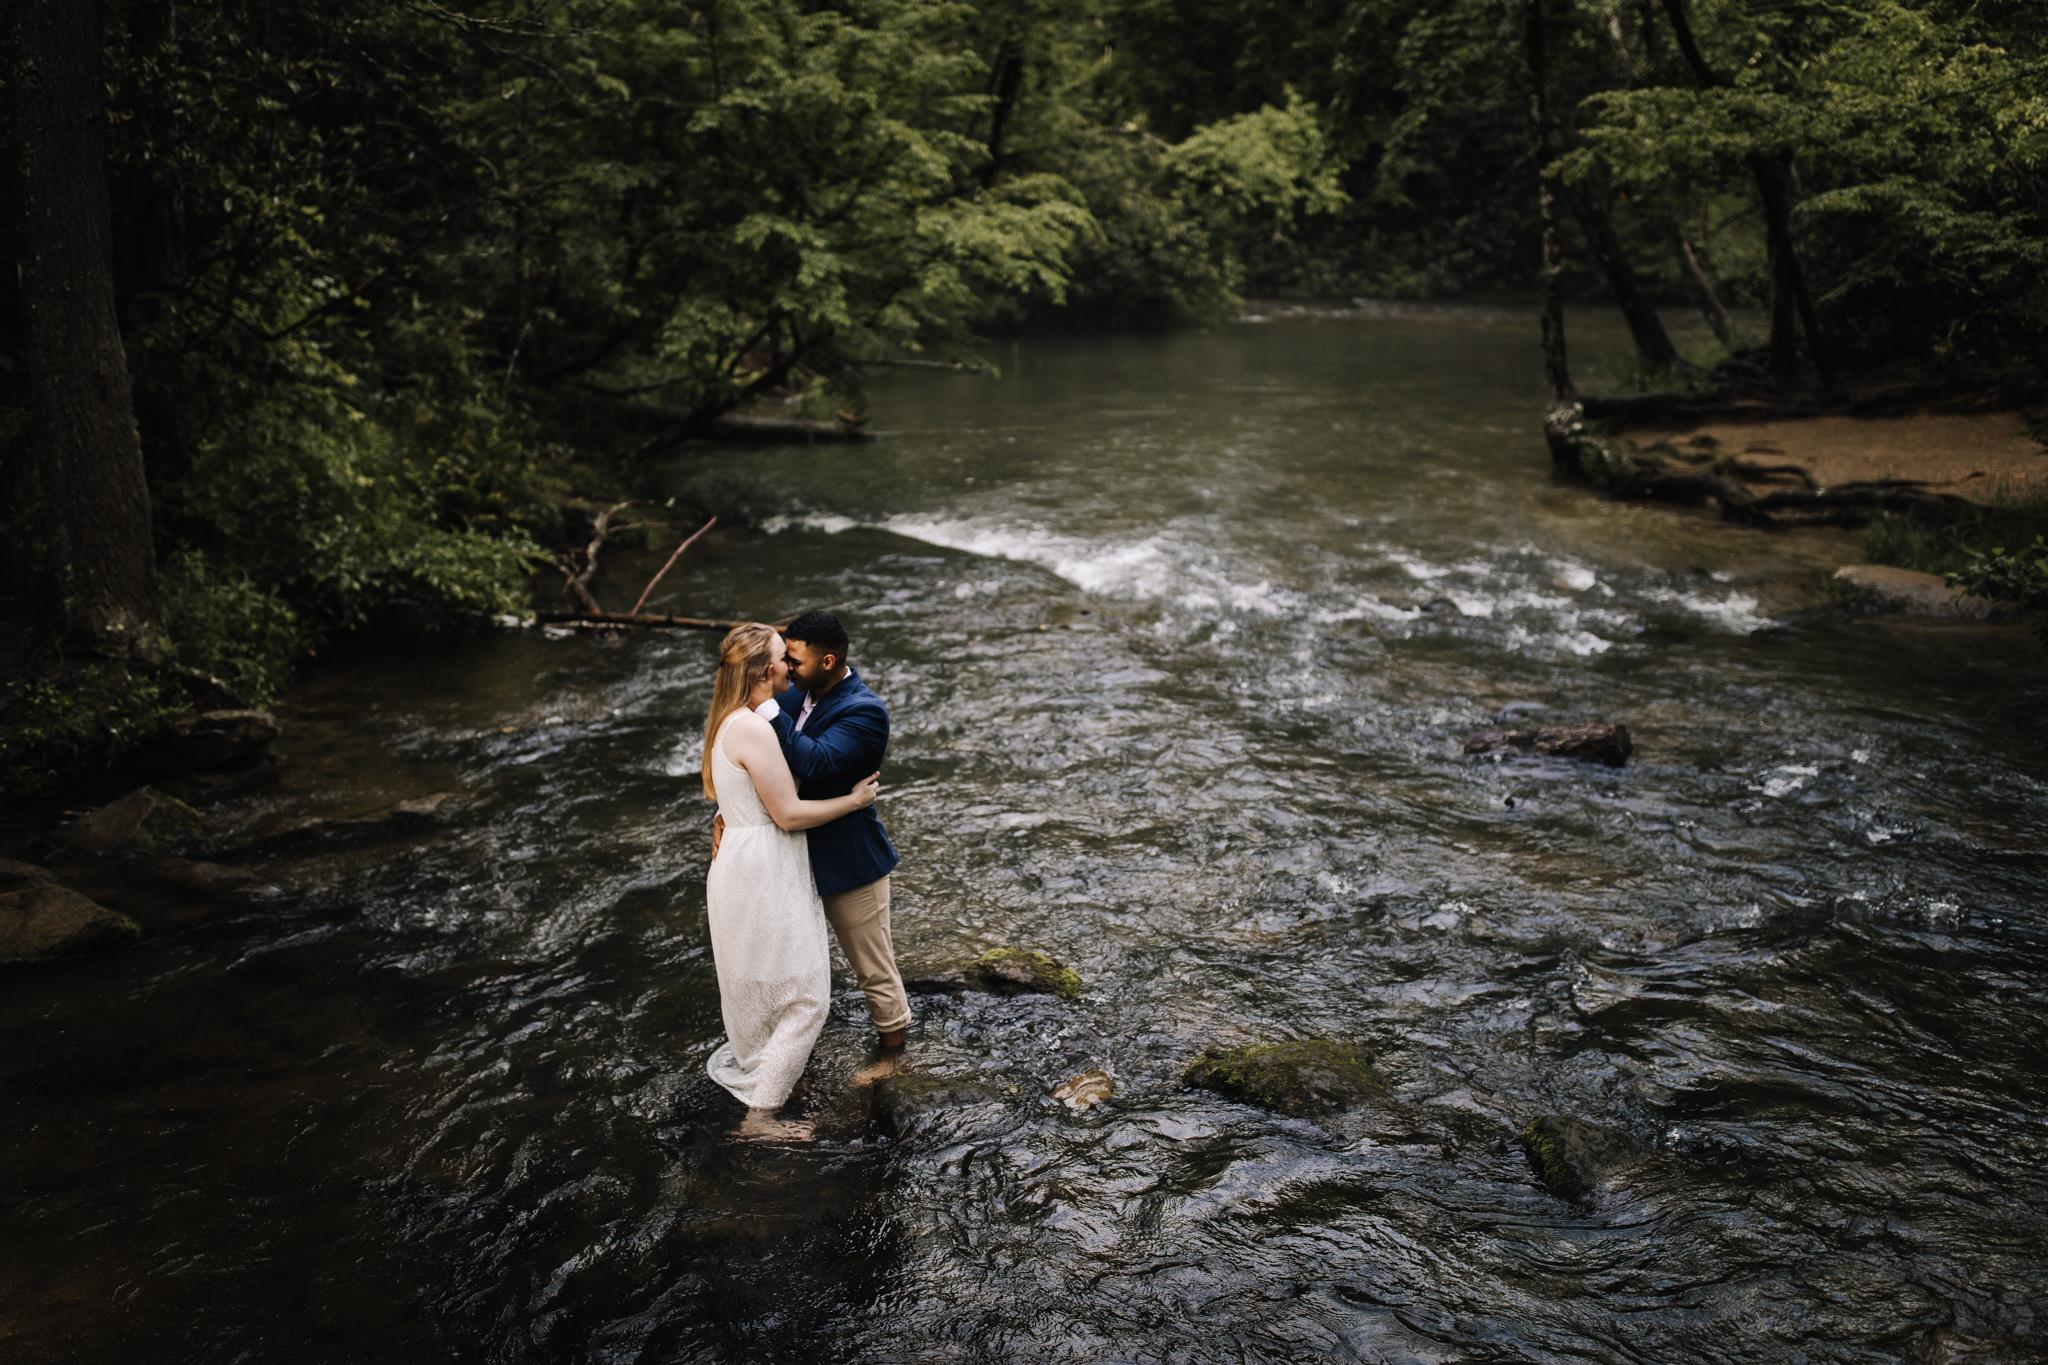 billie-shaye style photography - www.billieshayestyle.com - smokey mountain cades cove summer rain engagement session - gatlinburg tennessee-20.jpg